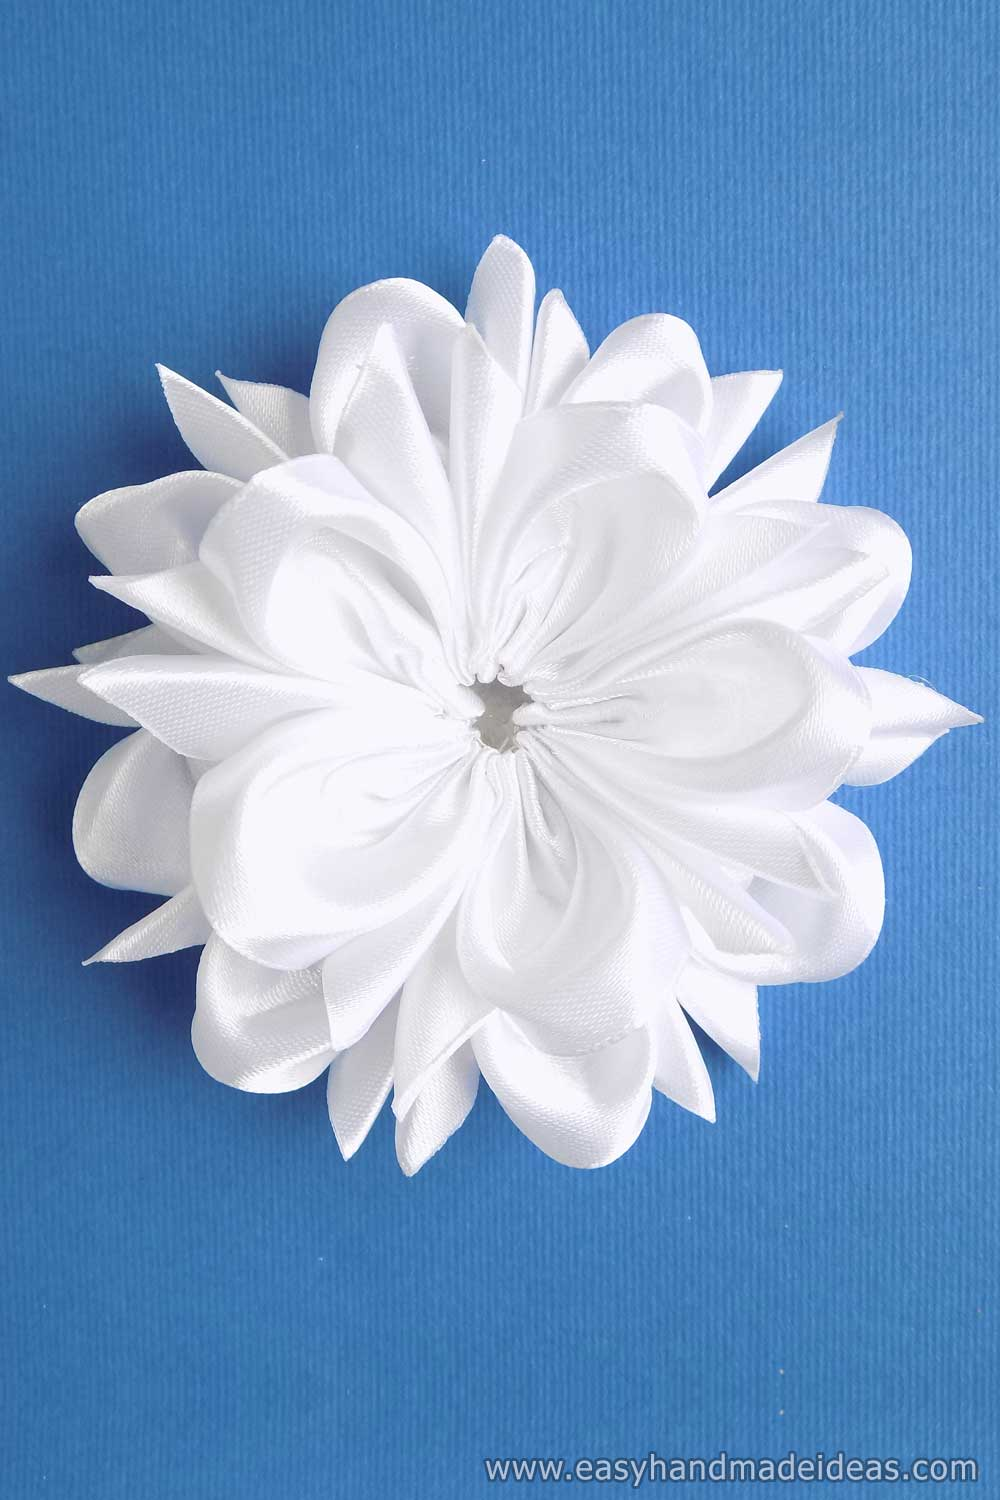 Two Rows of Petals Together